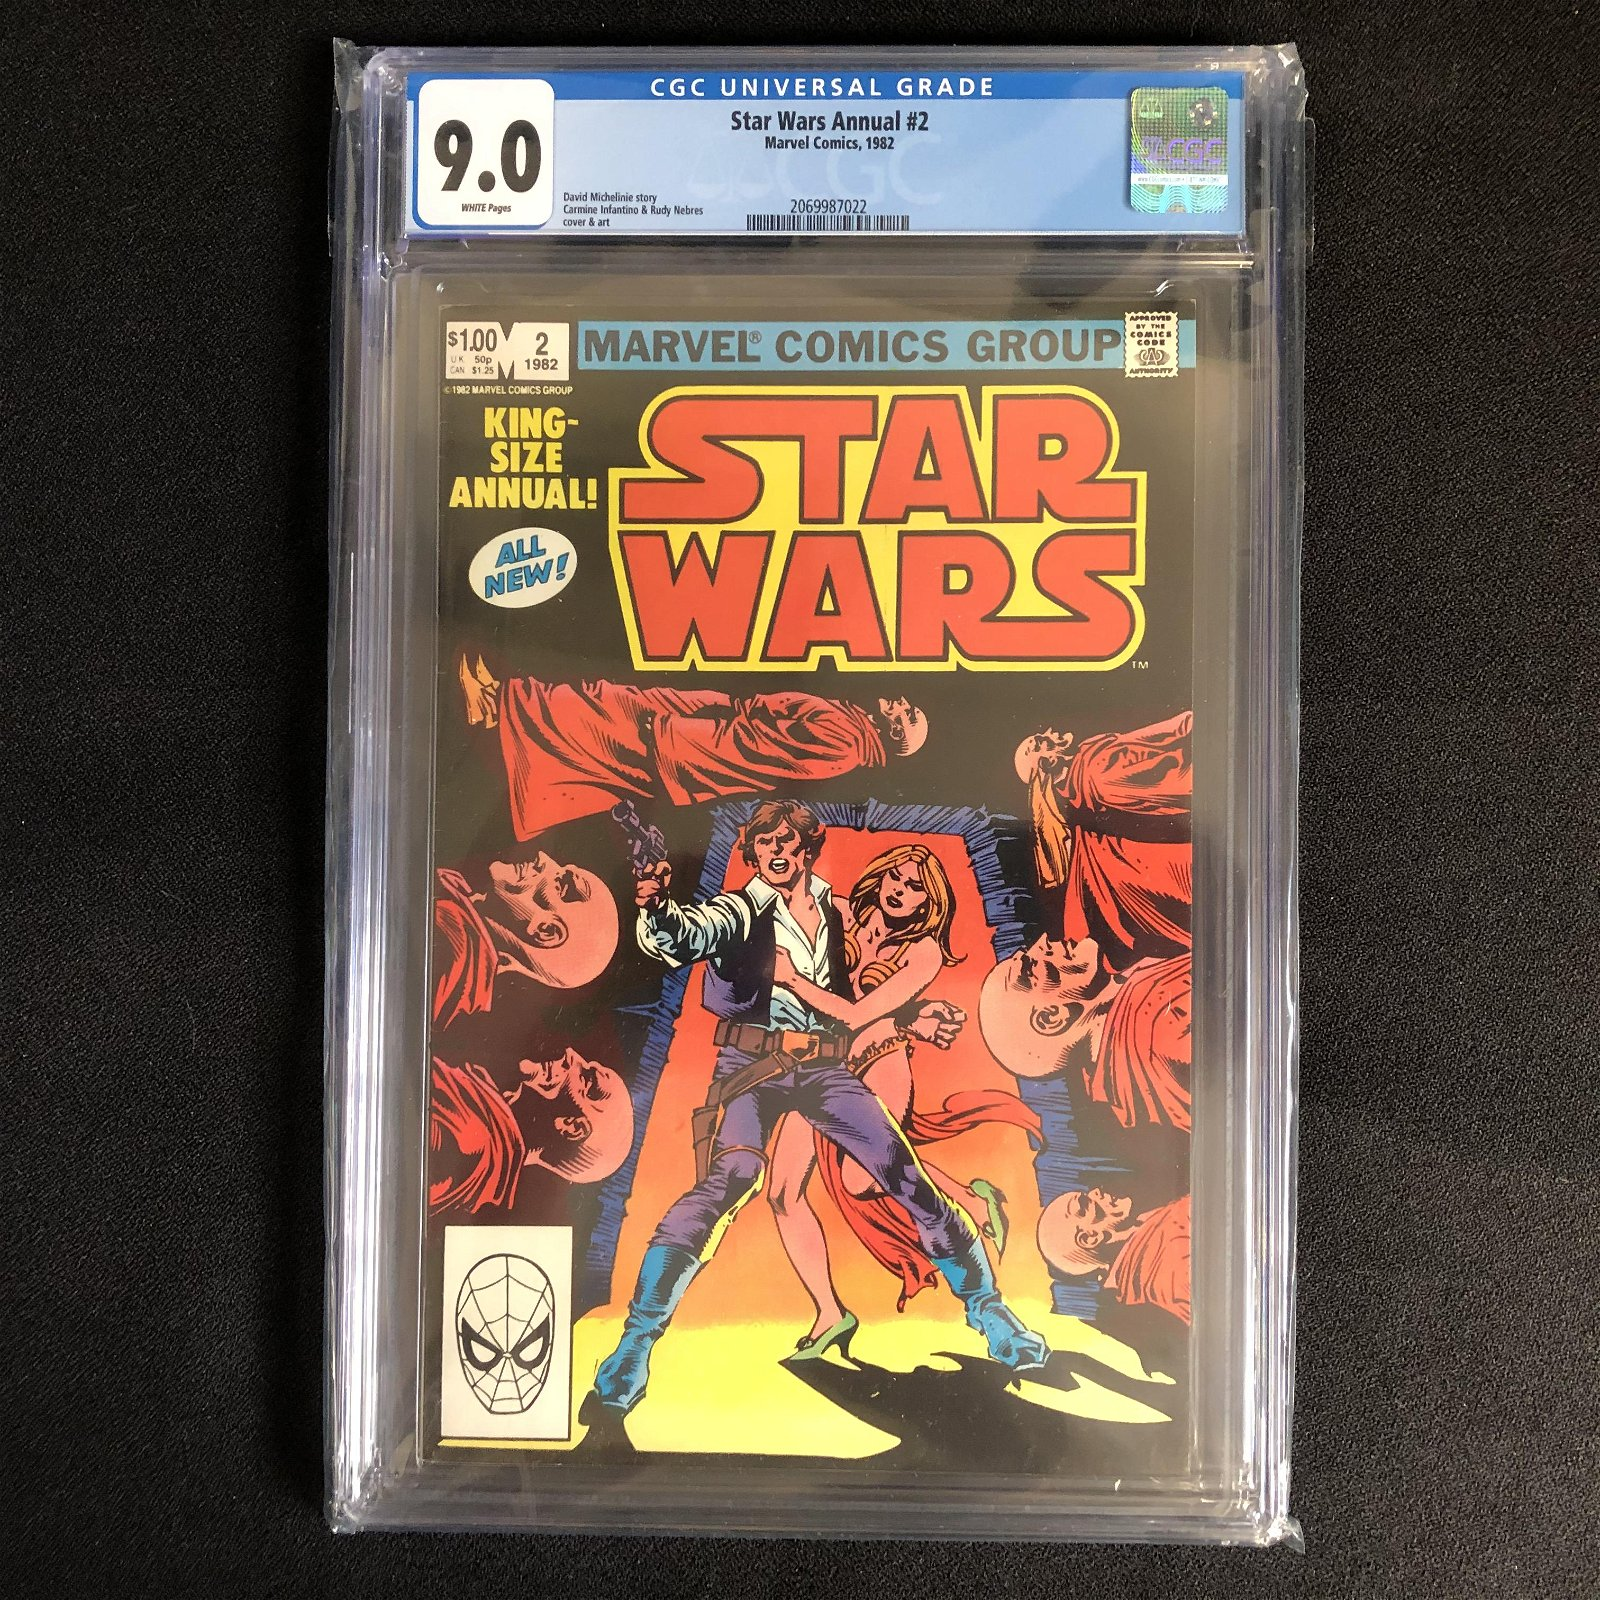 STAR WARS ANNUAL #2 (MARVEL COMICS) 1982 -9.0 GRADE-